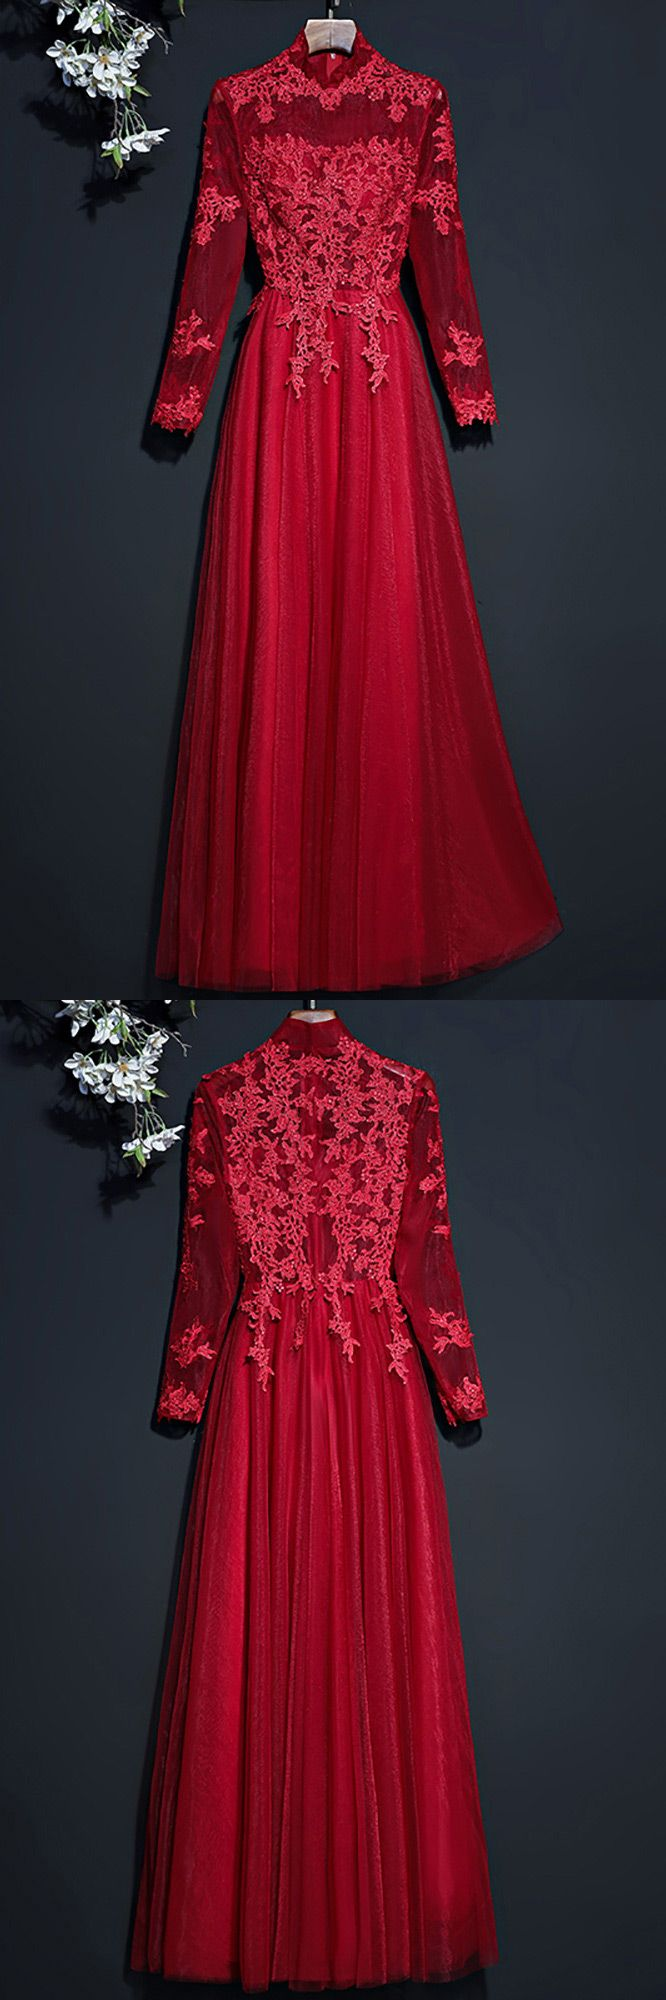 Only $109, Vintage Lace High Neck Prom Party Dress With Long Sleeves #MYX18189 at #SheProm. SheProm is an online store with thousands of dresses, range from Prom,Party,Red,A Line Dresses,Long Dresses,Long Sleeve Dresses and so on. Not only selling formal dresses, more and more trendy dress styles will be updated daily to our store. With low price and high quality guaranteed, you will definitely like shopping from us. Shop now to get $10 off!